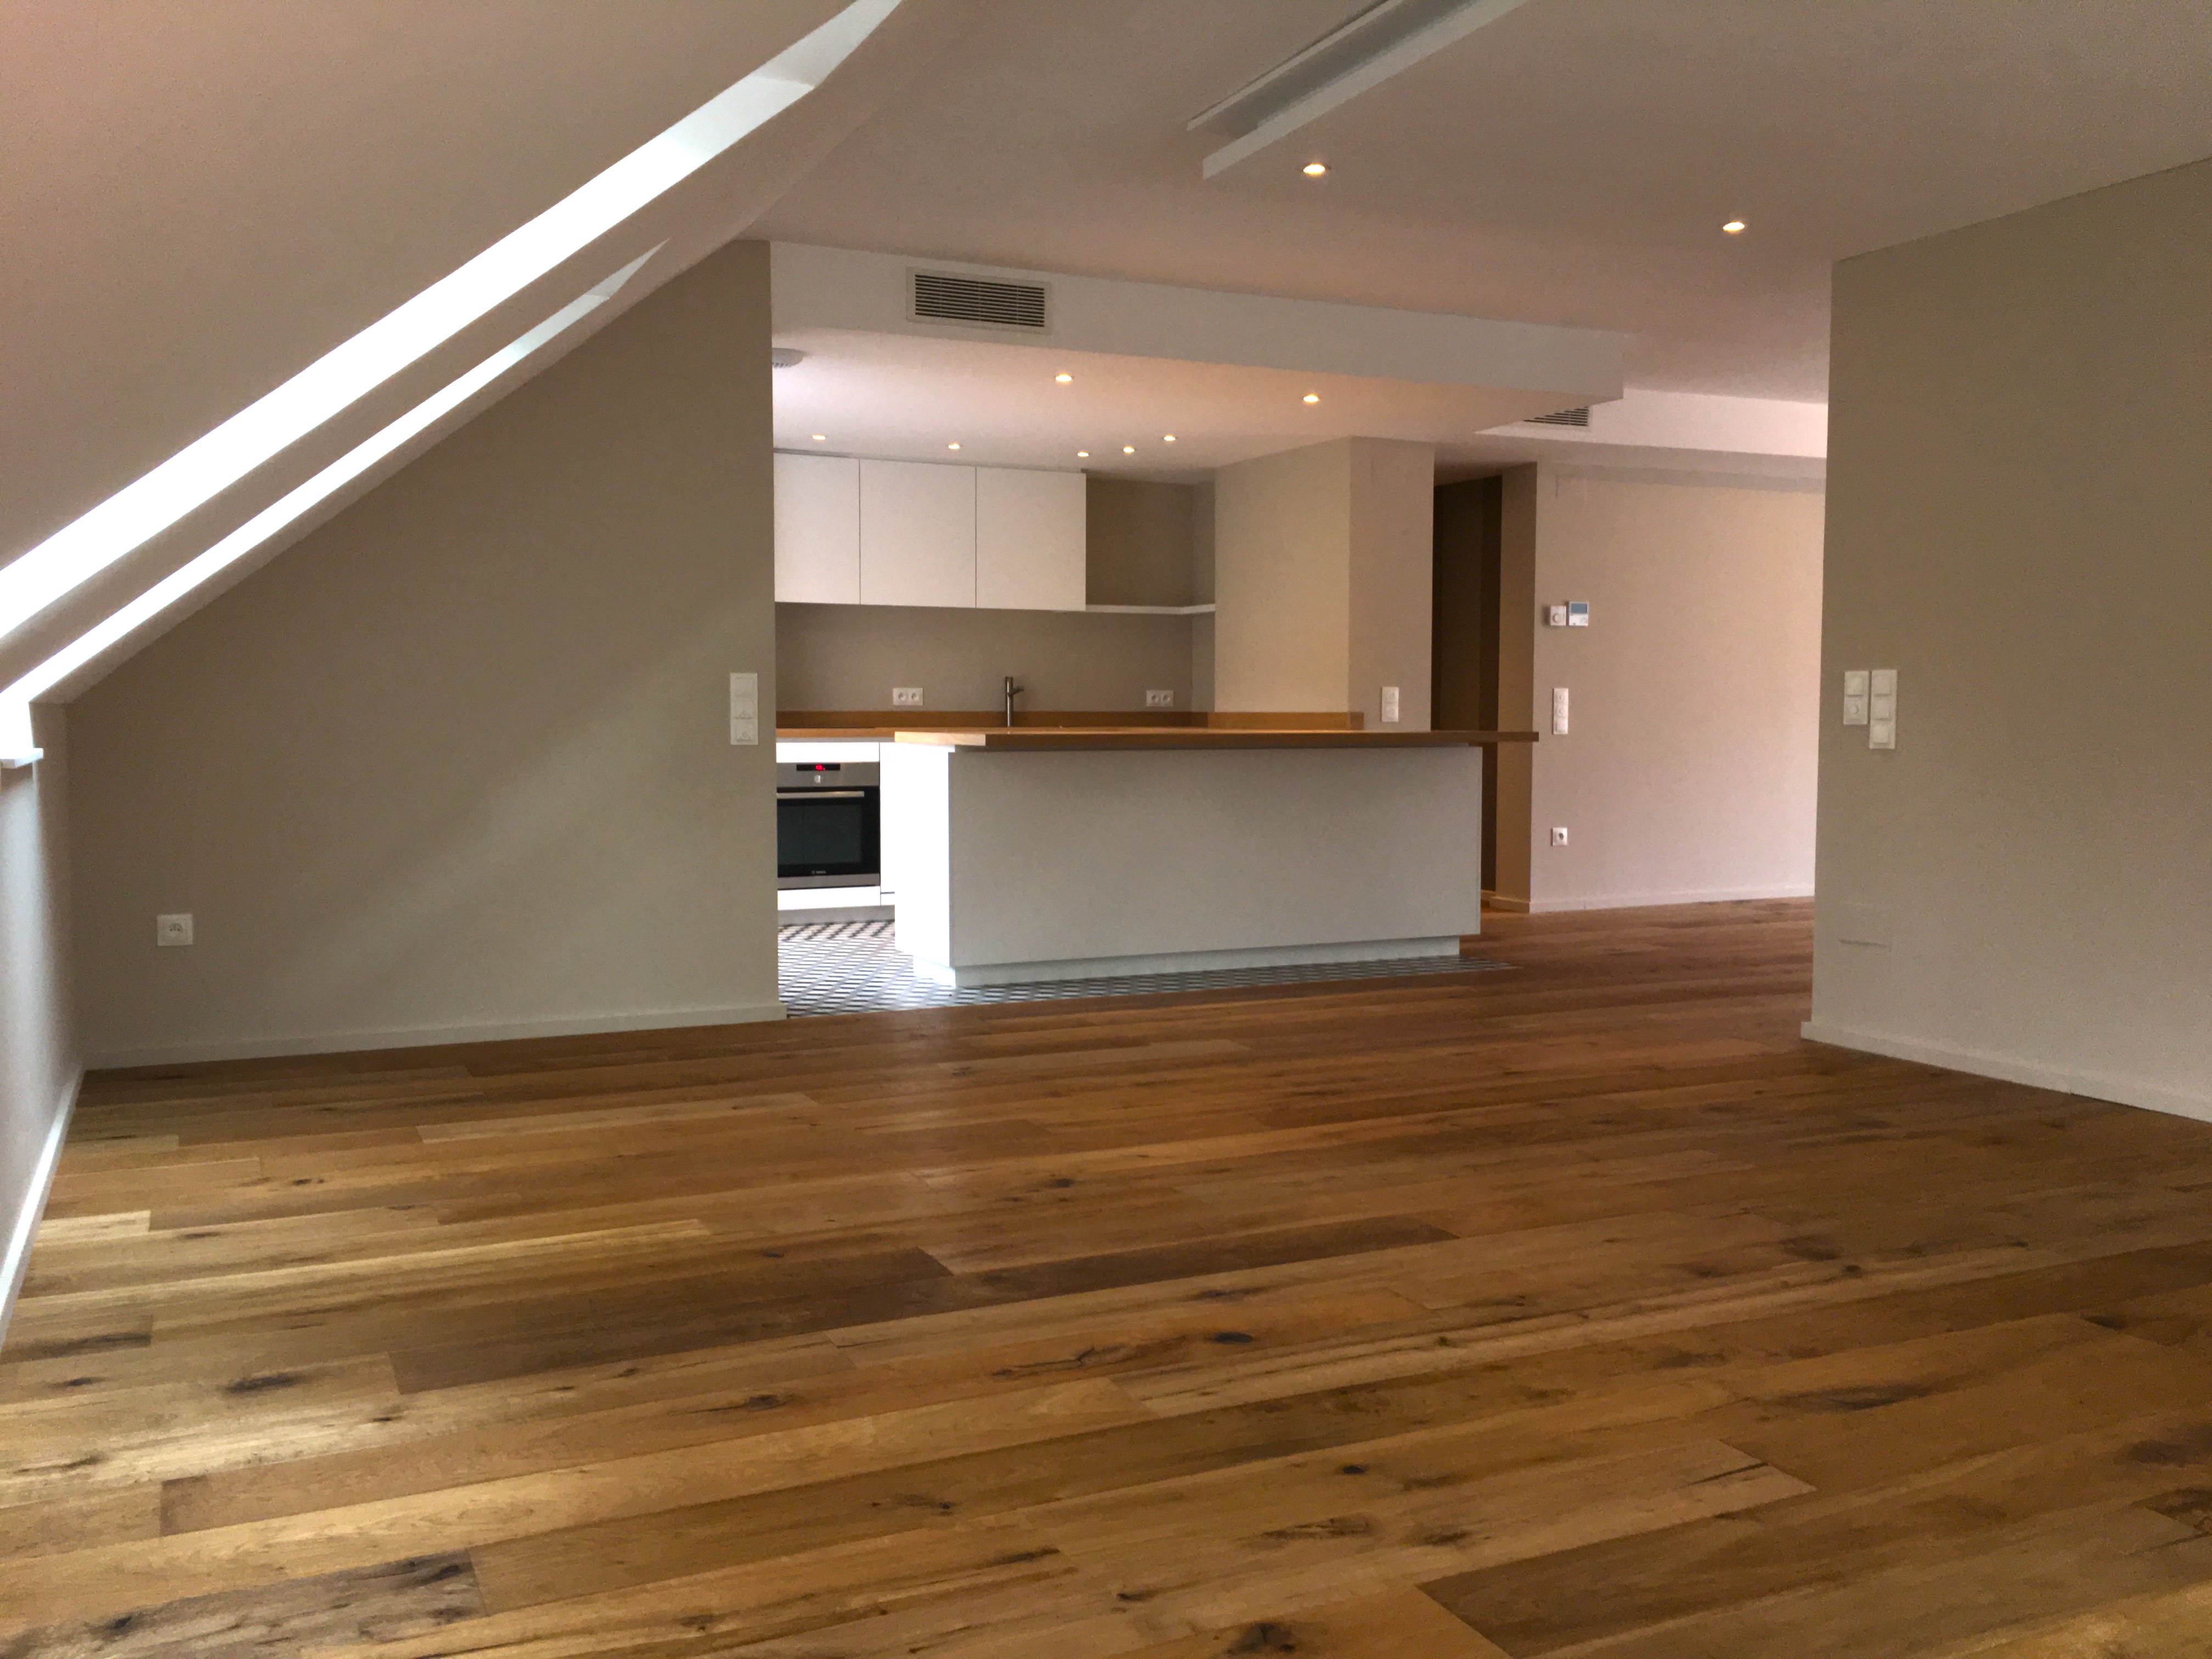 Location appartement meubl strasbourg cool suprieur for Appartement meuble strasbourg